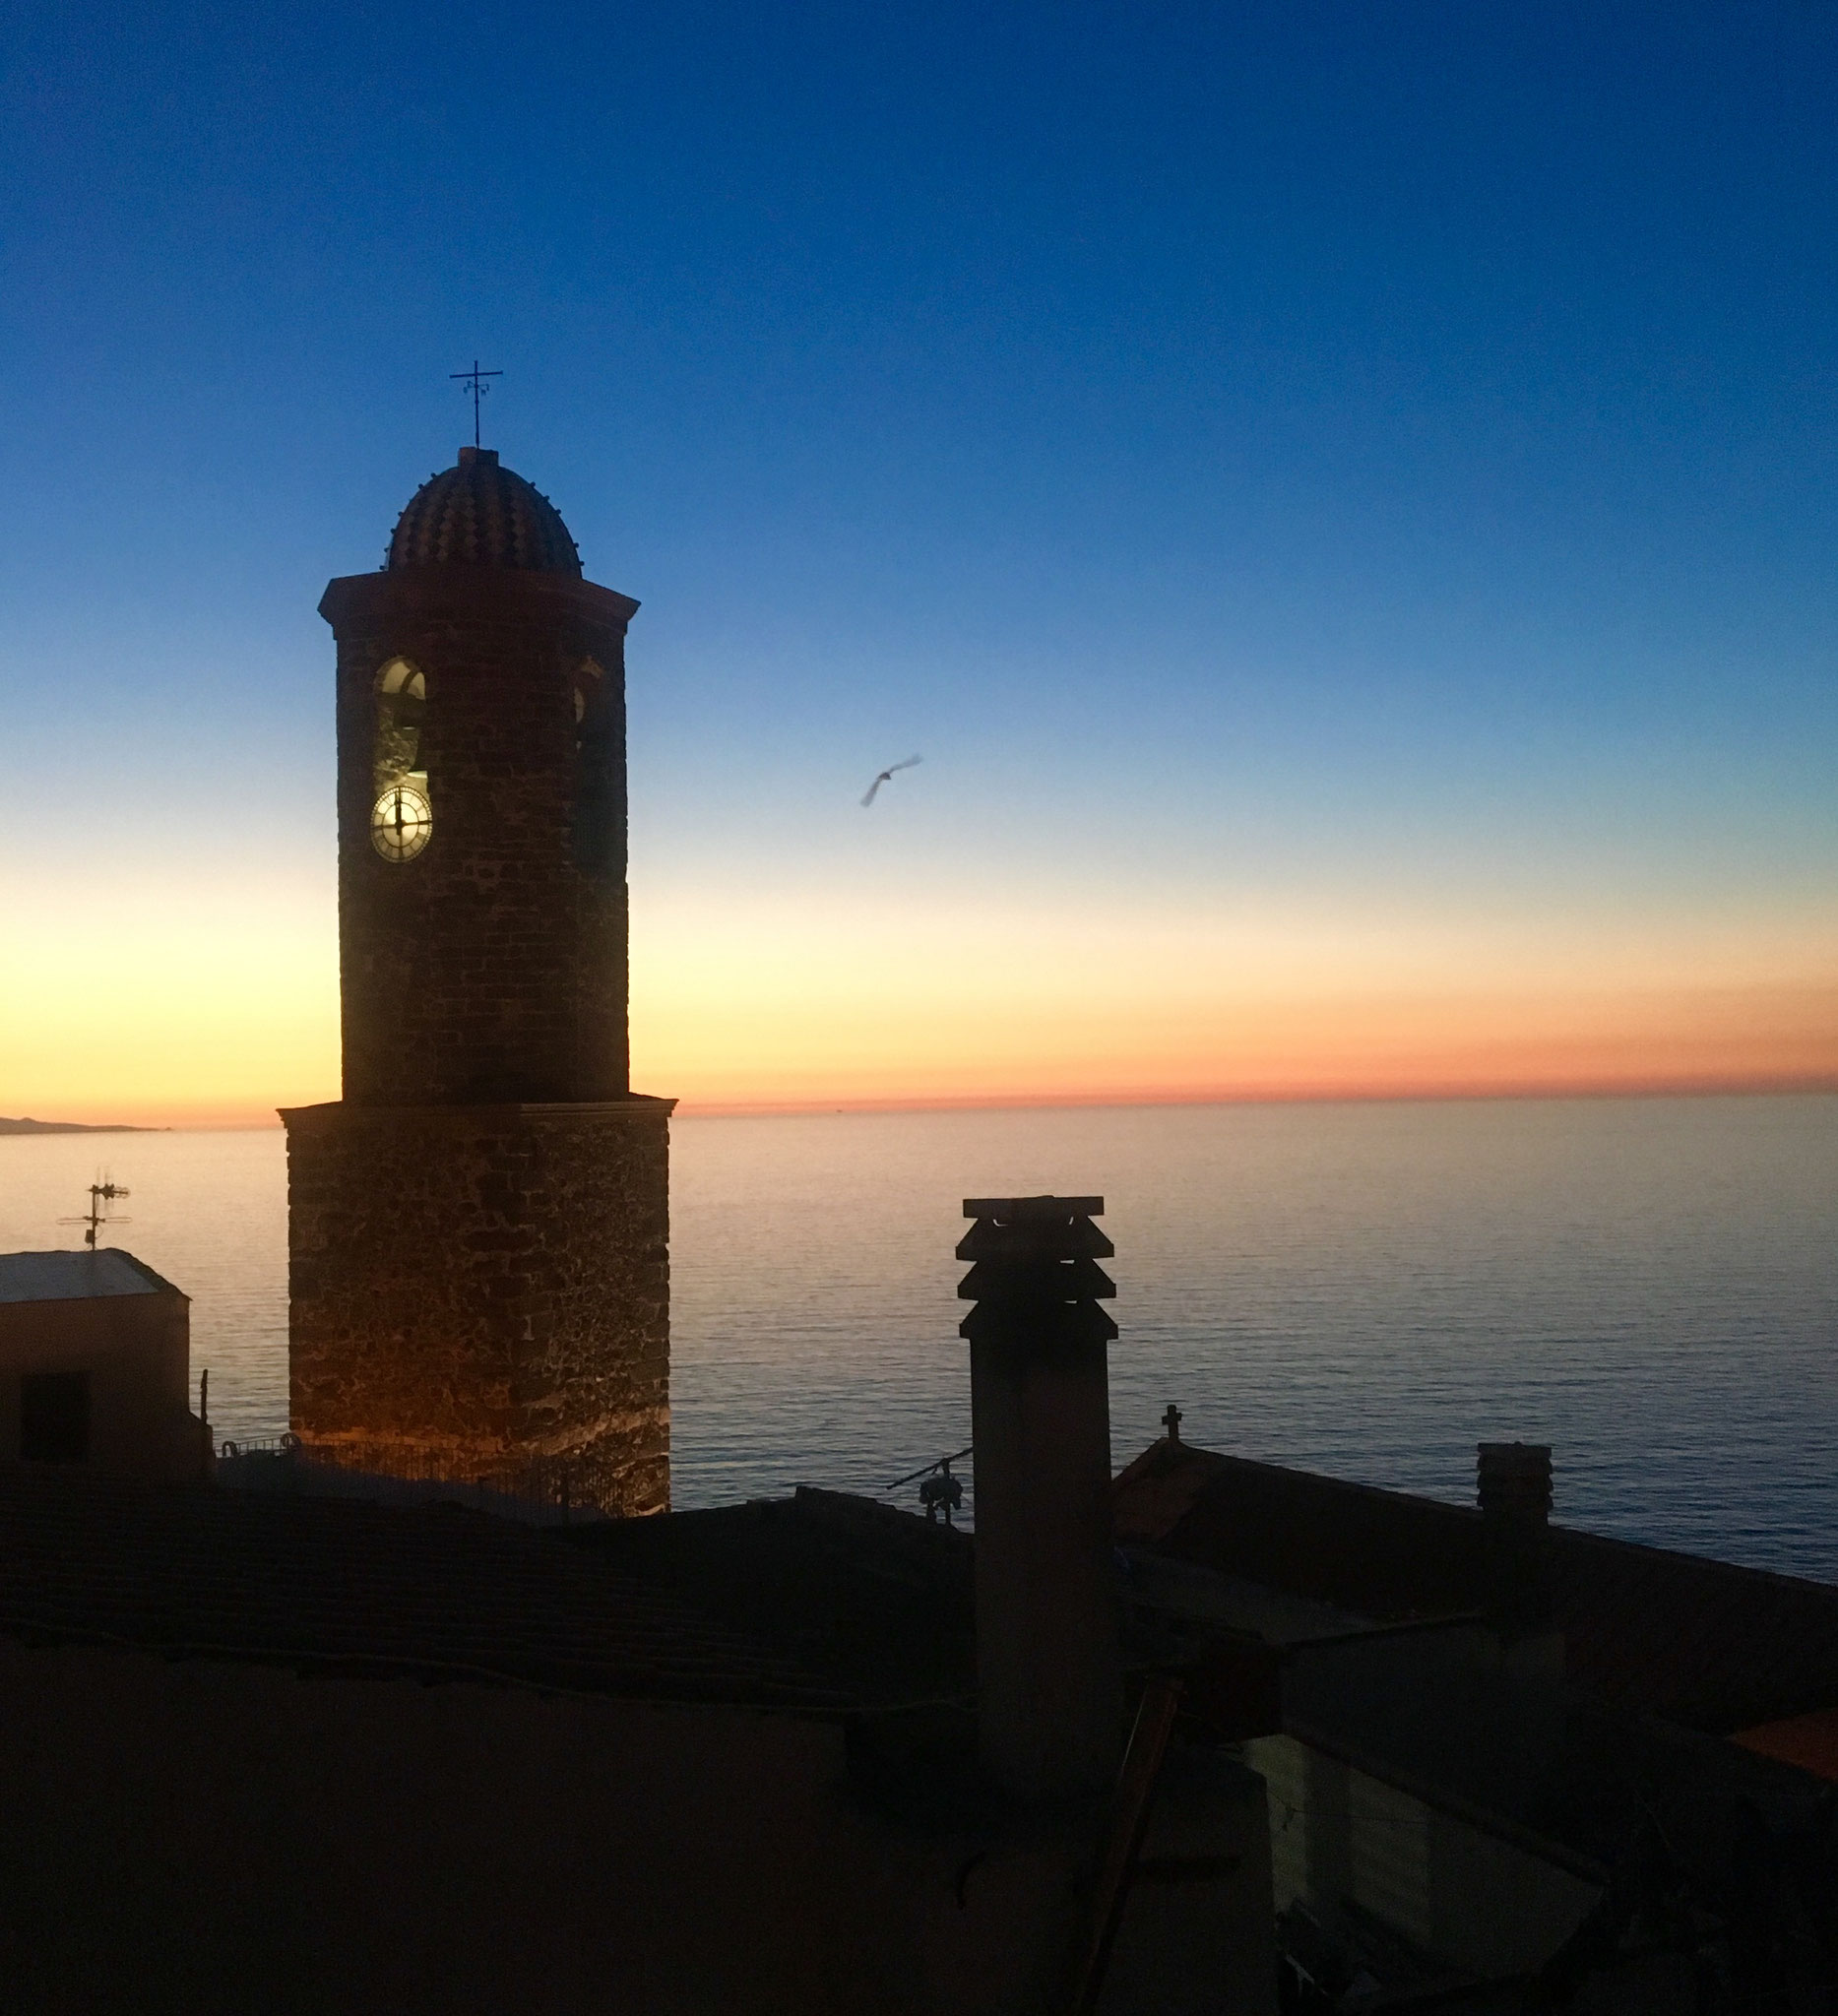 Sunset viewing from our terrace in Castelsardo